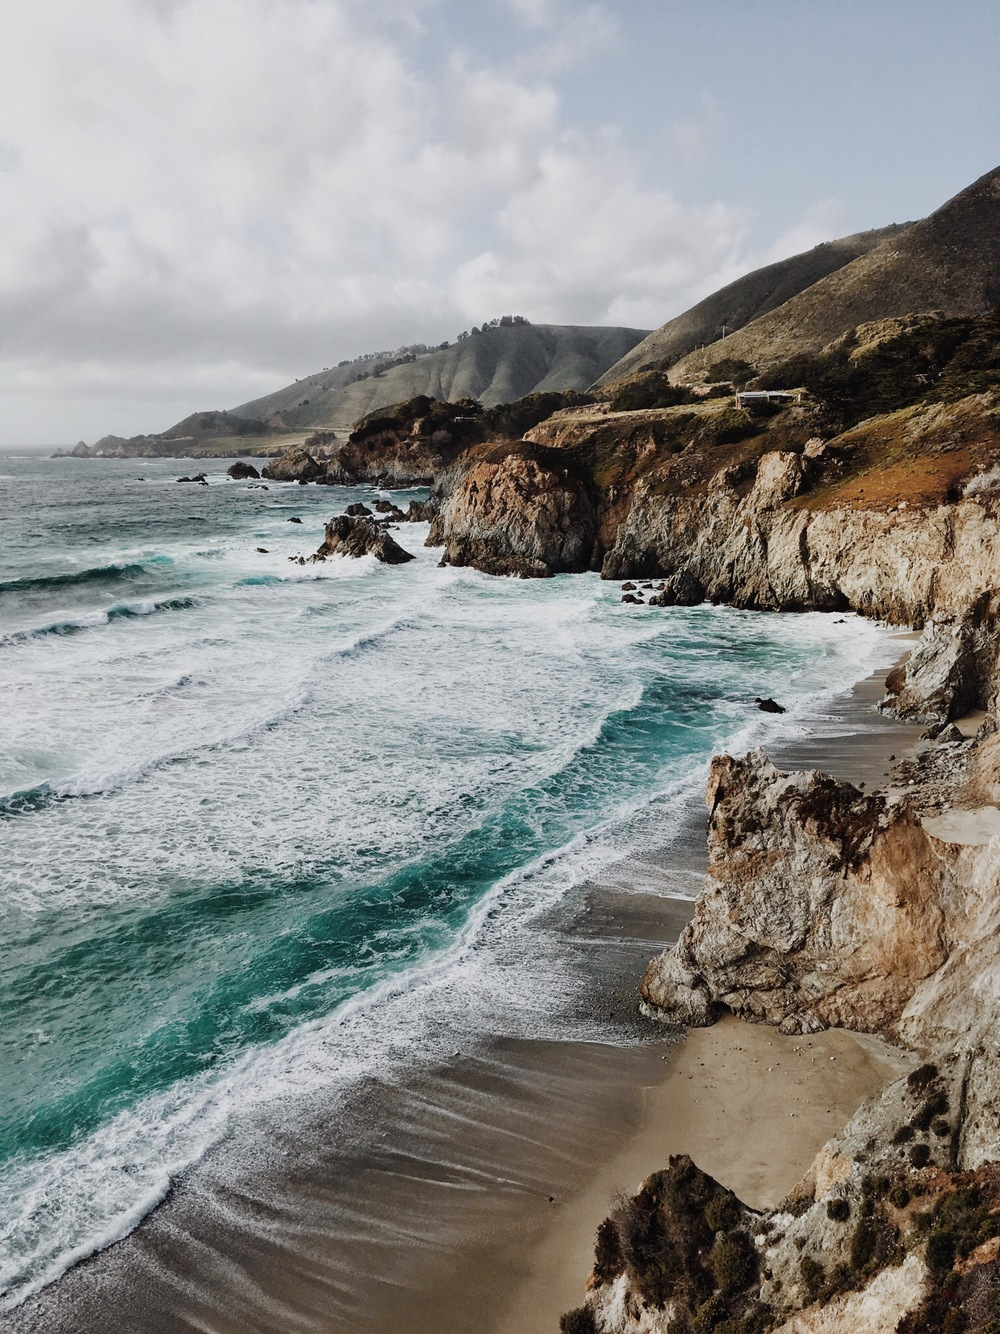 Greenish blue waters and wild waves hitting out at the rocky heights...this is Big Sur for you!